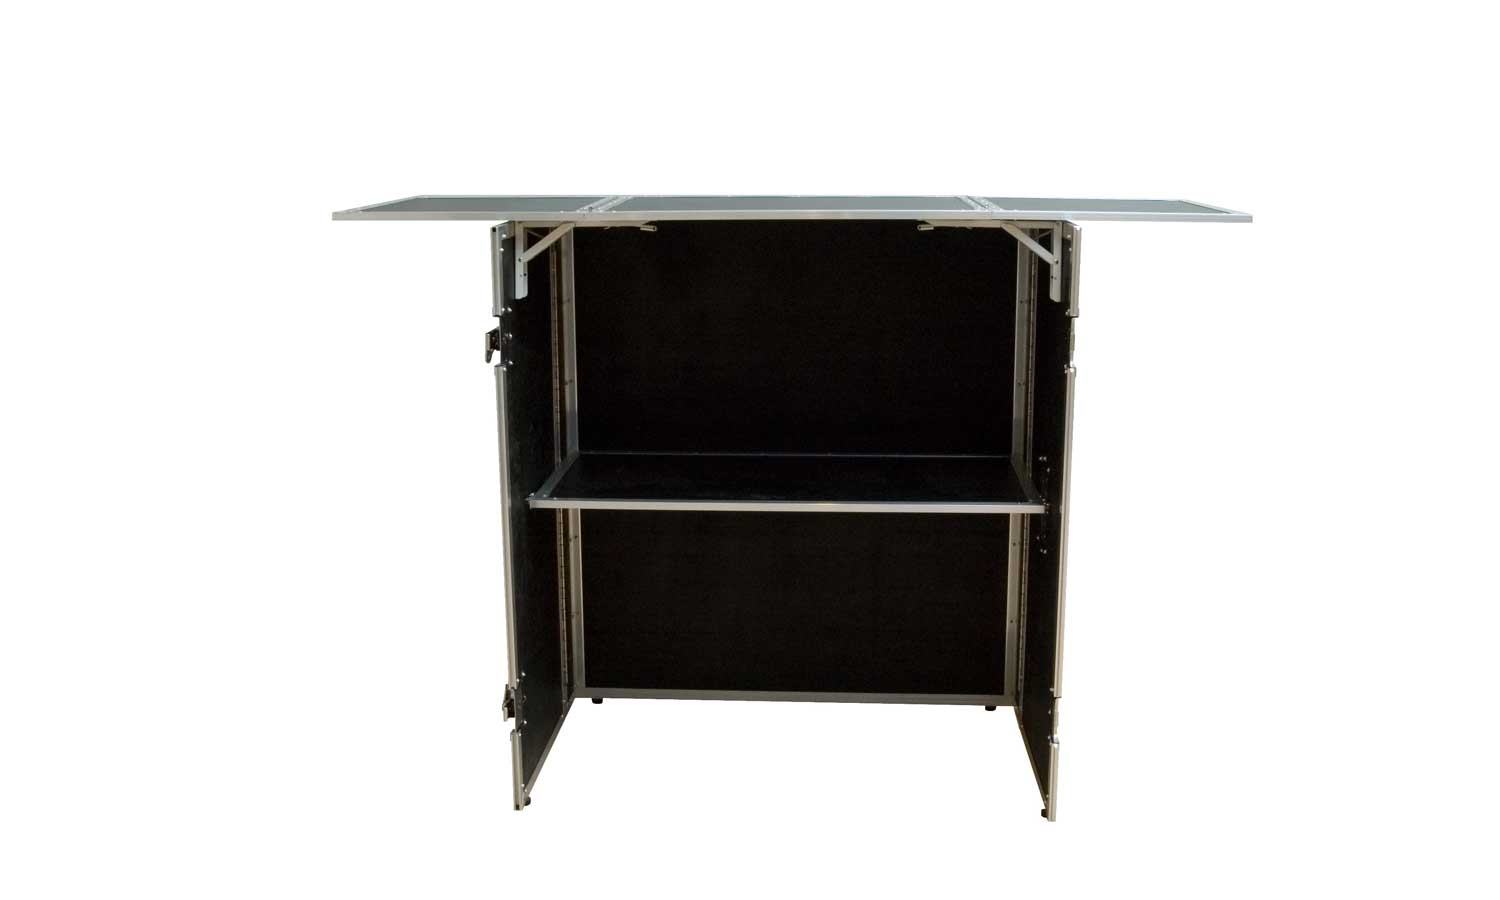 dj stand is a compact solid and foldable dj flightcase table. Black Bedroom Furniture Sets. Home Design Ideas